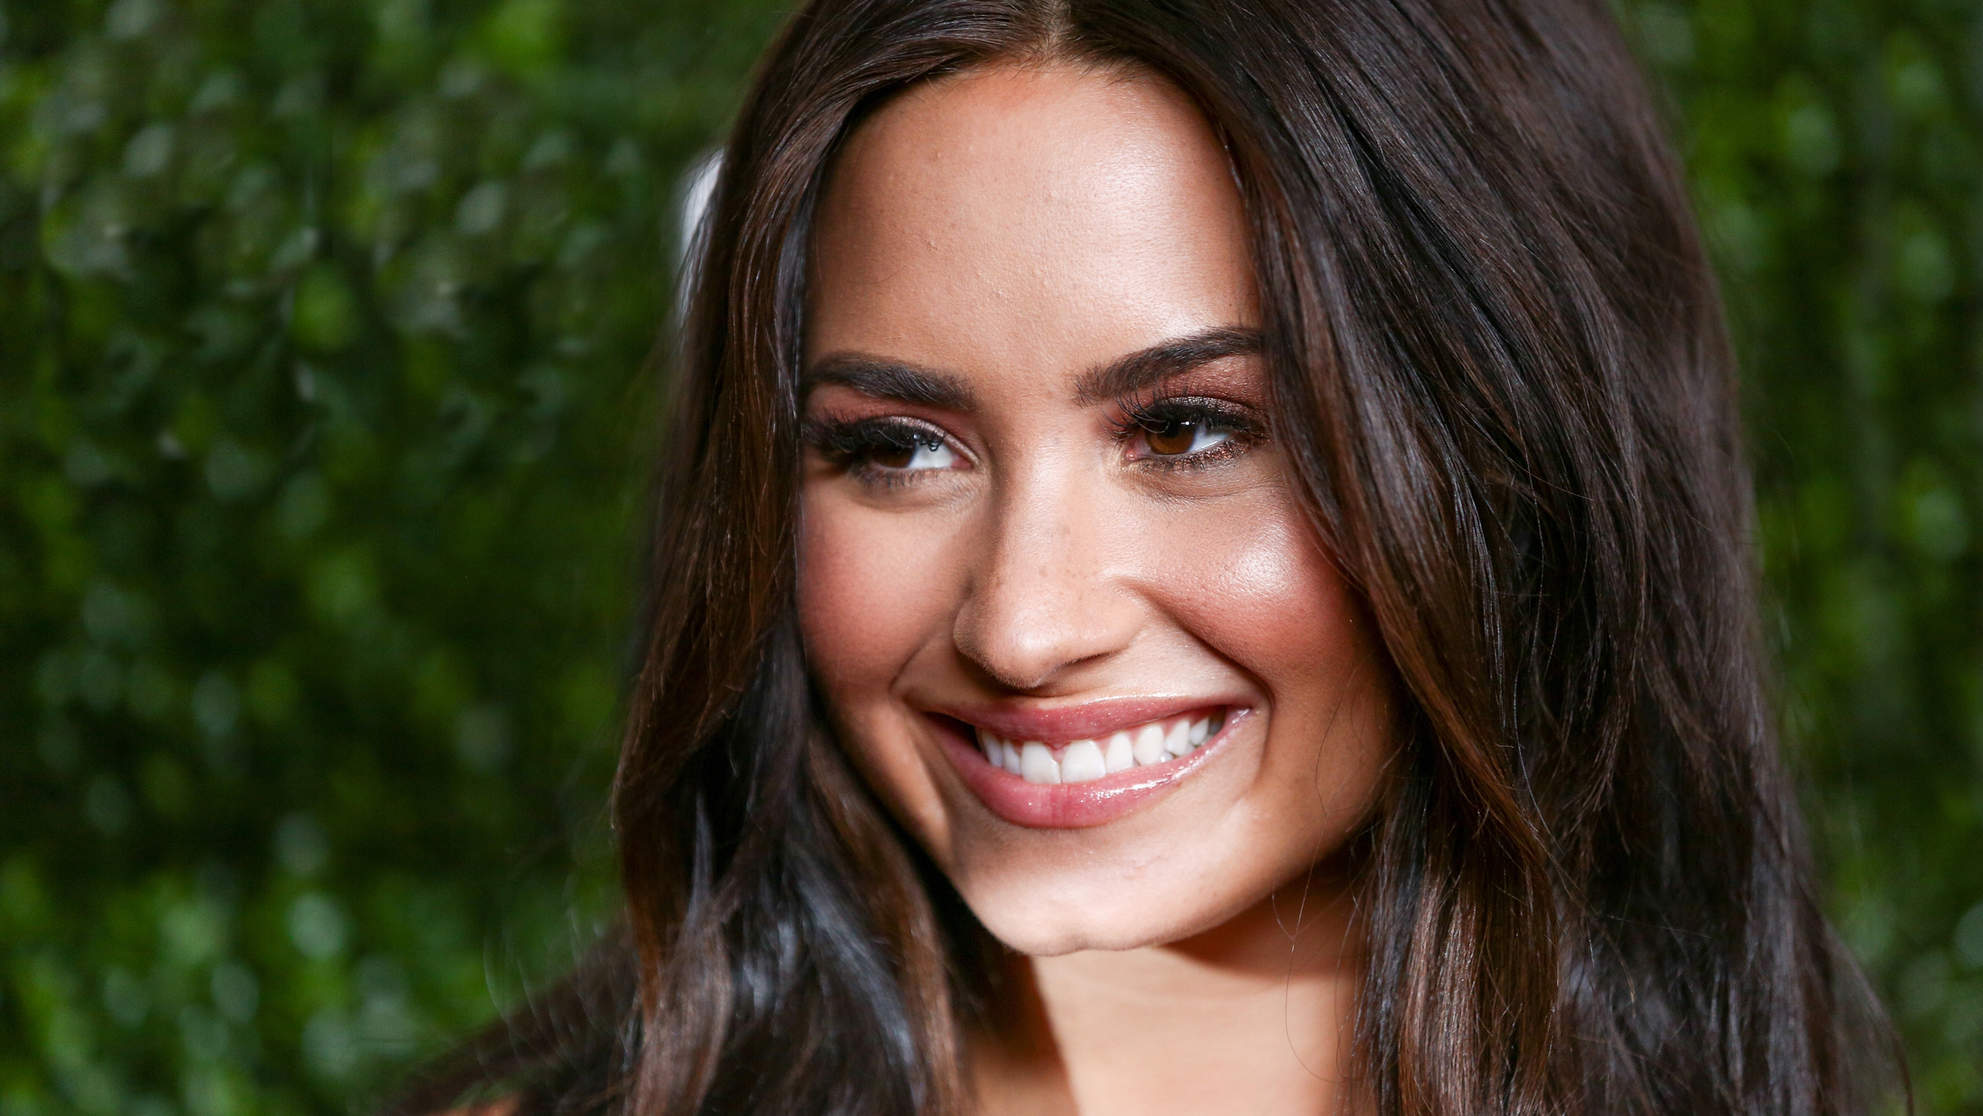 Demi Lovato Opens Up About Her Sobriety: 'Every Day Is A Battle'